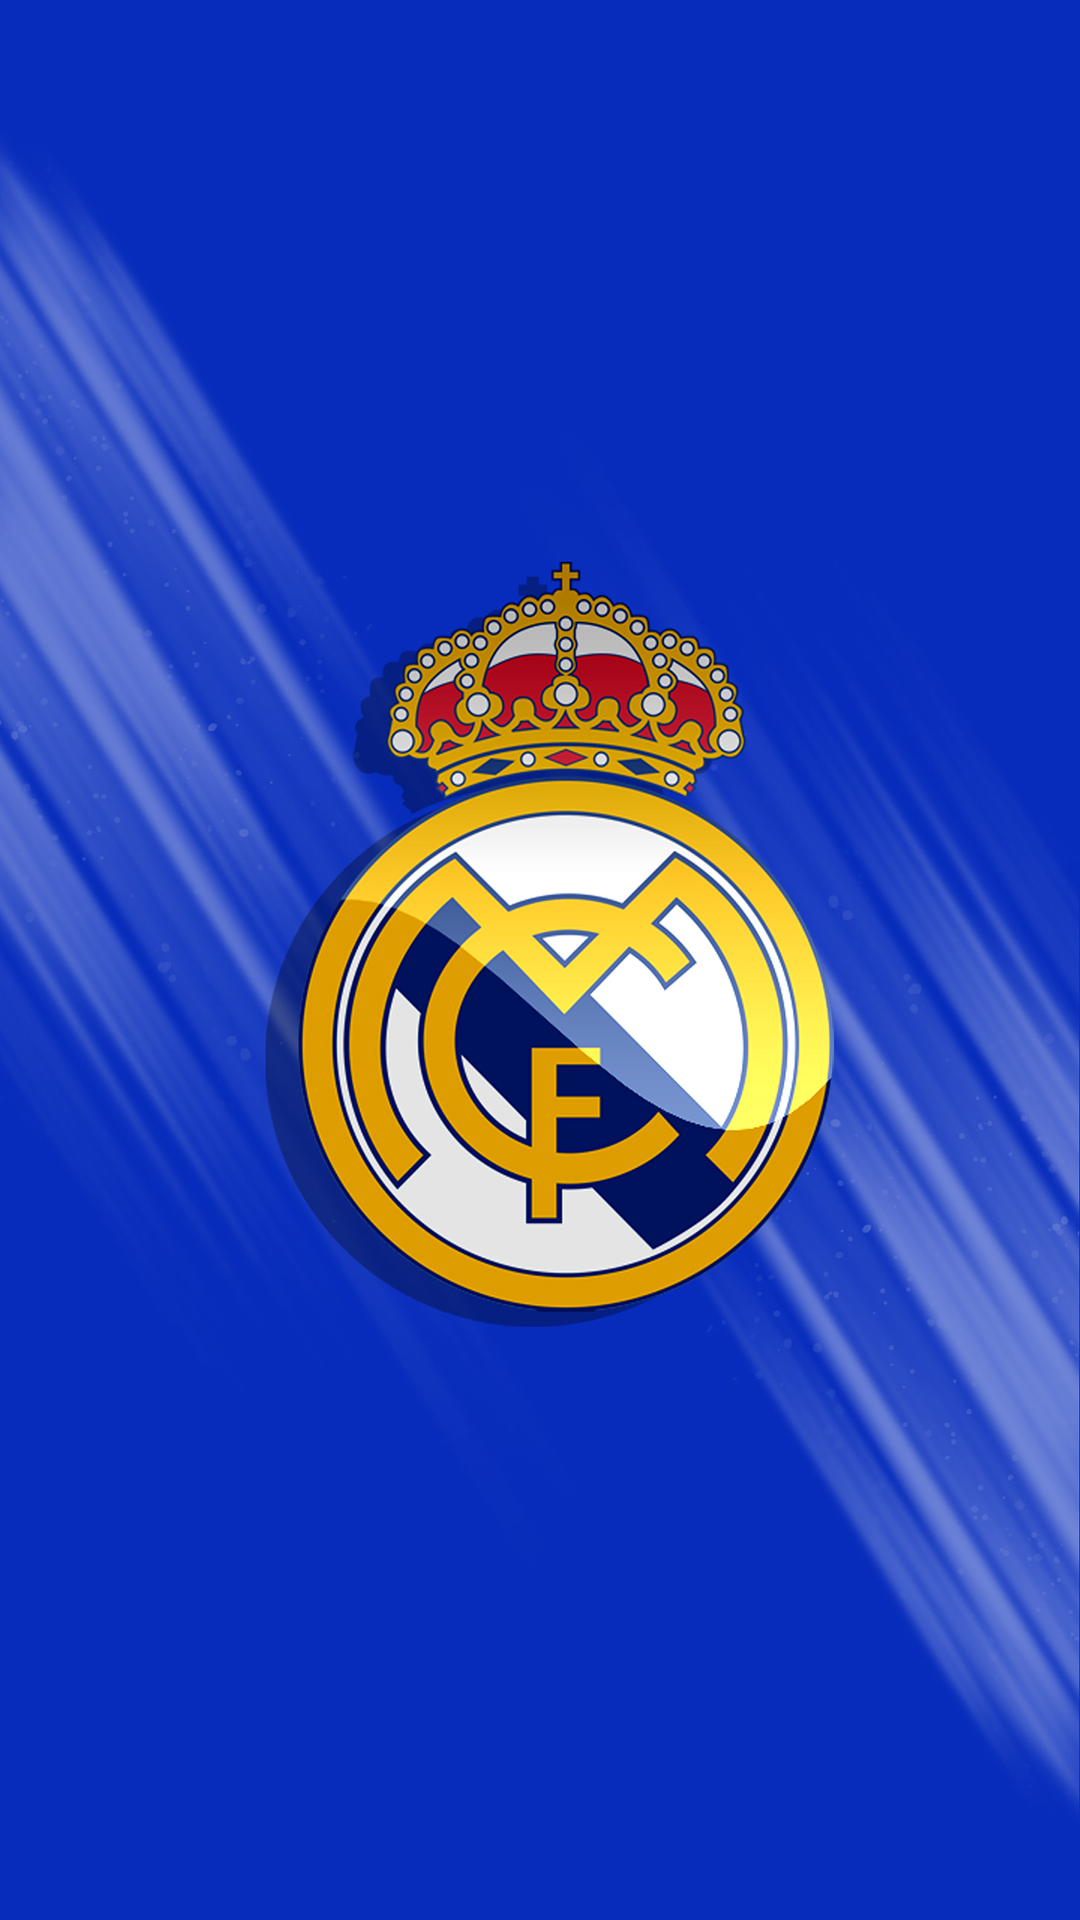 Hd wallpaper quotes for android - Download Iphone Real Madrid Wallpaper Gallery